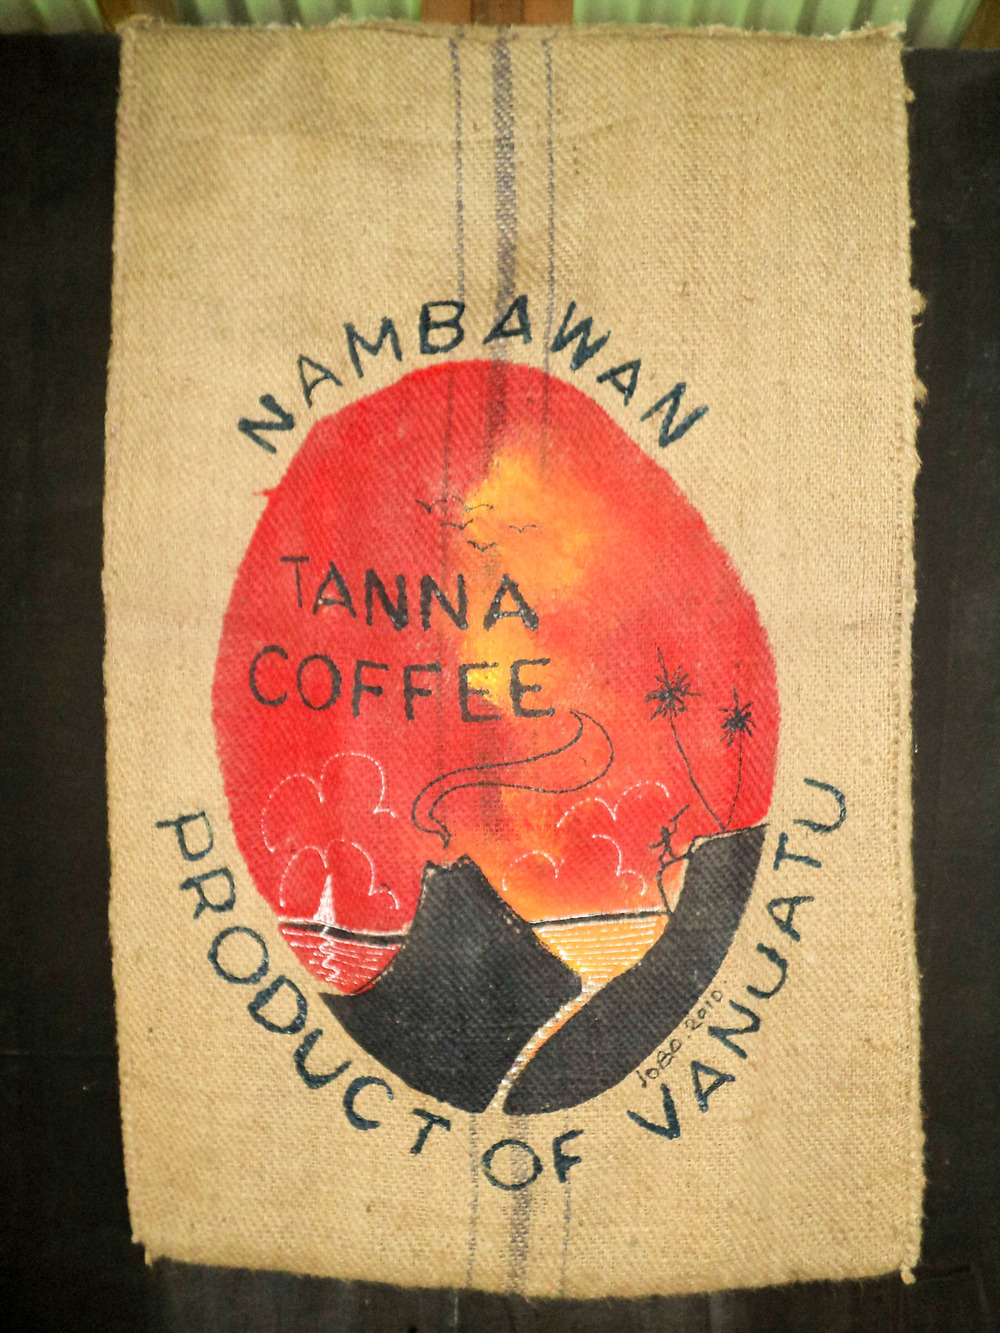 Local coffee producer.